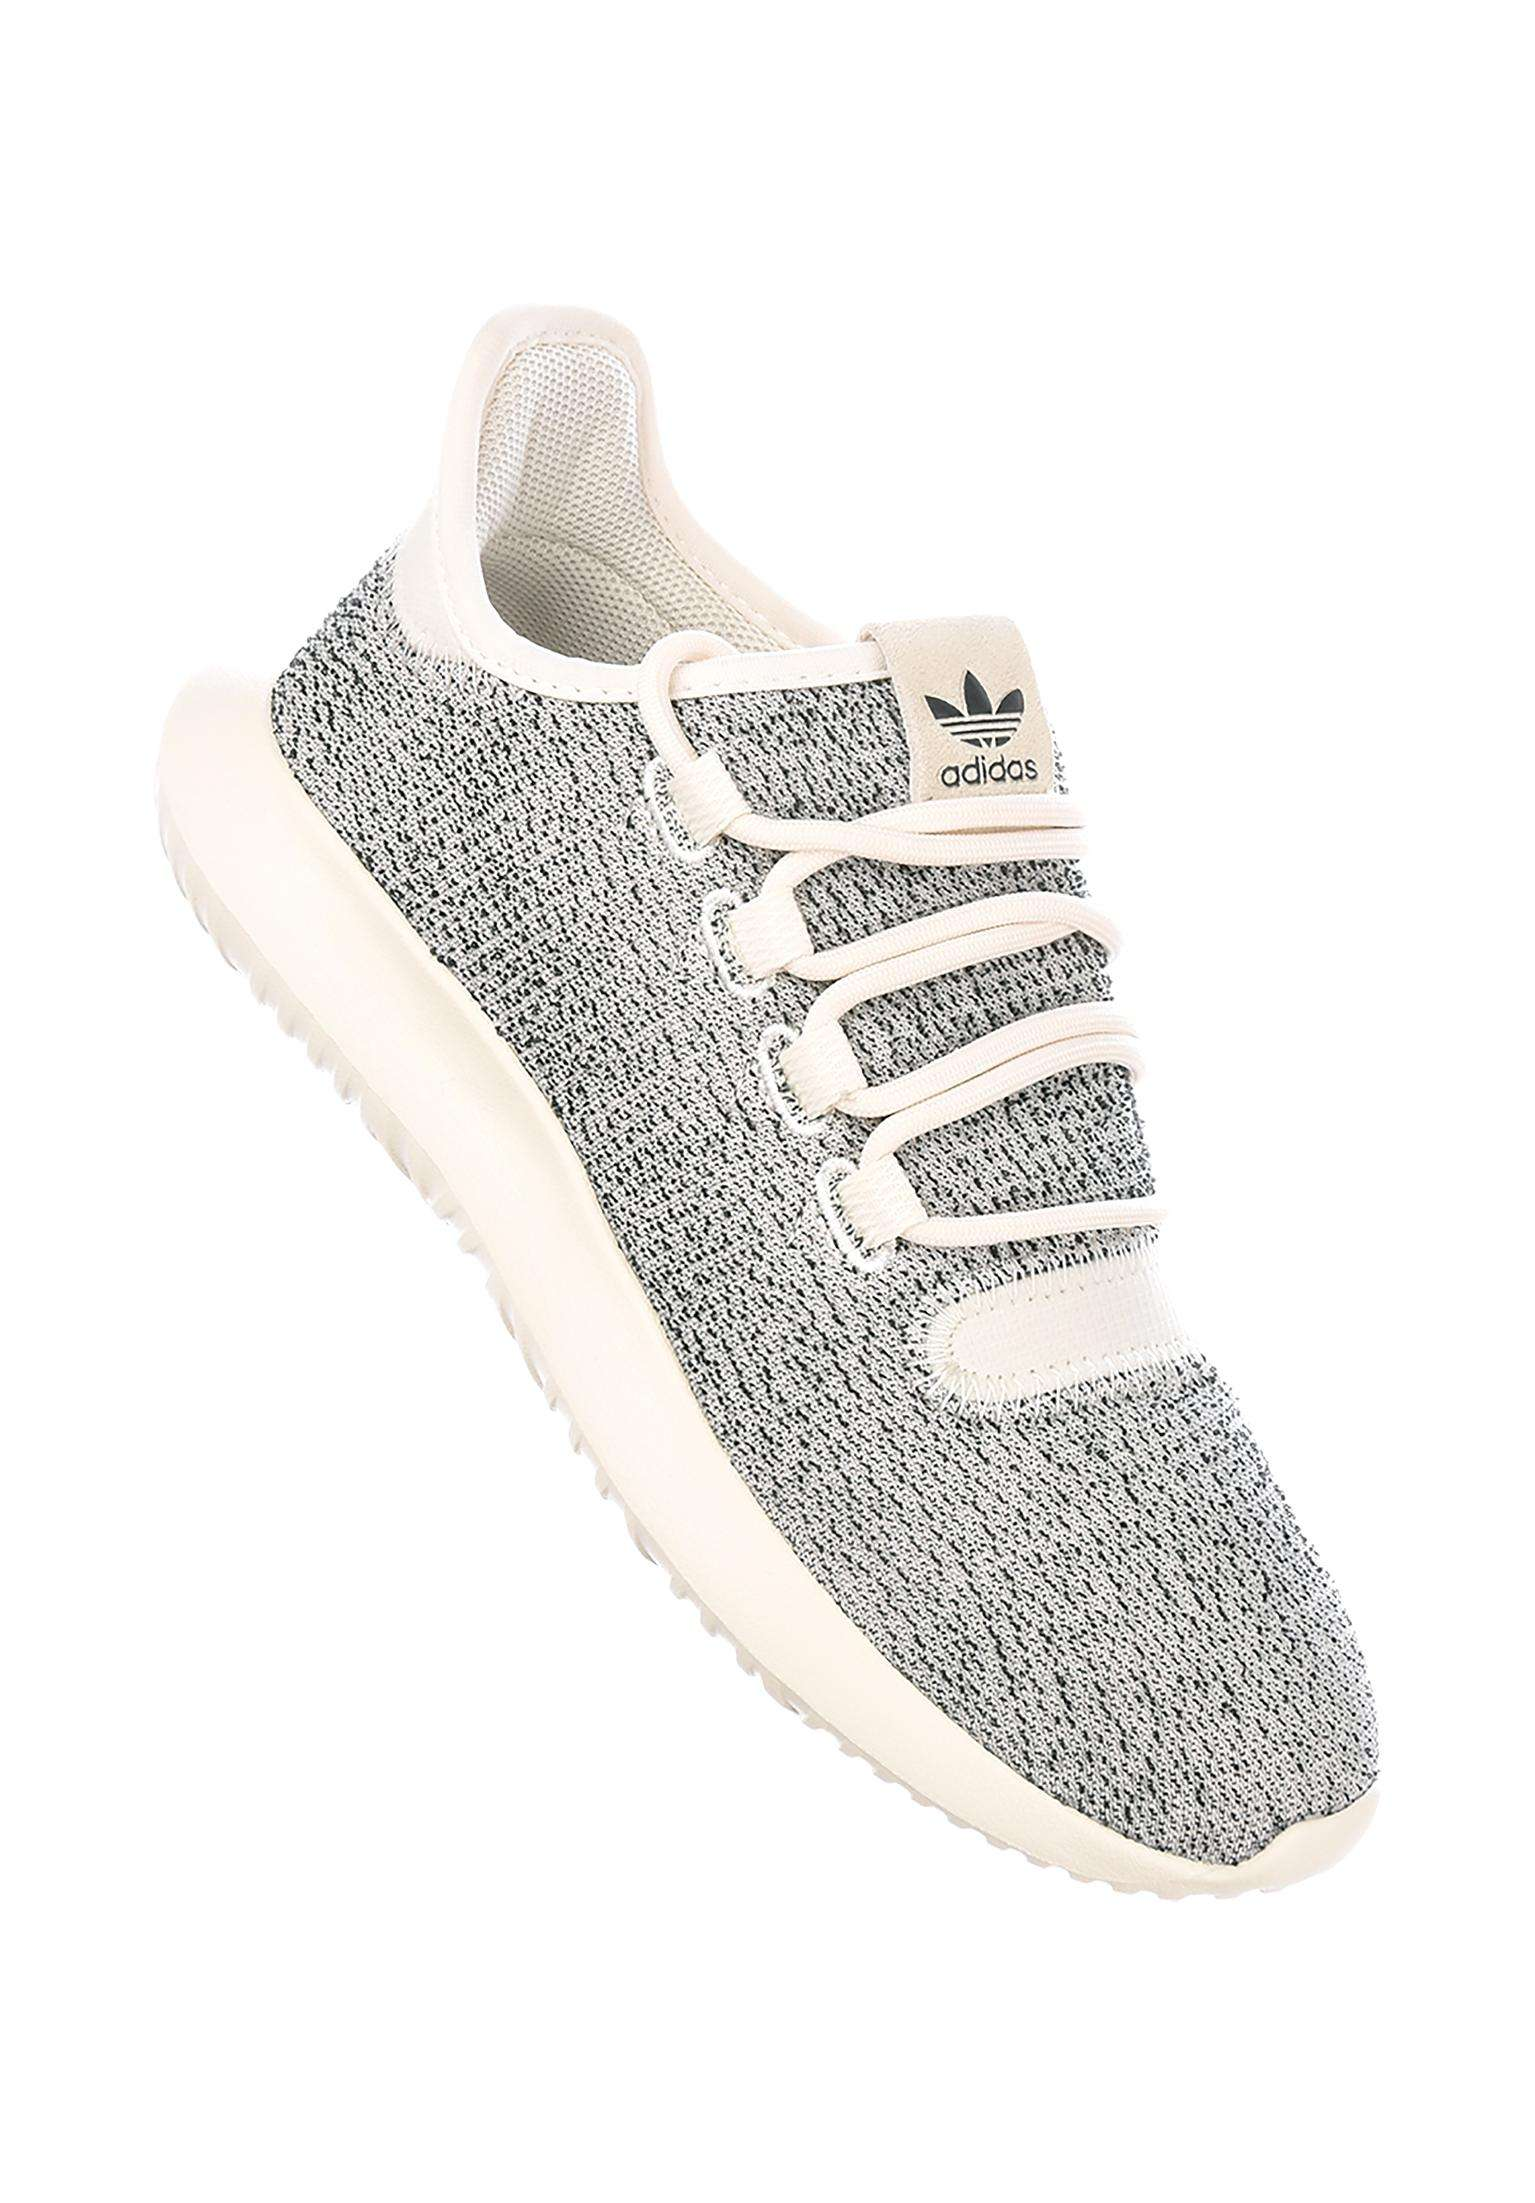 best sneakers 49679 15947 italy adidas tubular off white e9d80 ce22d